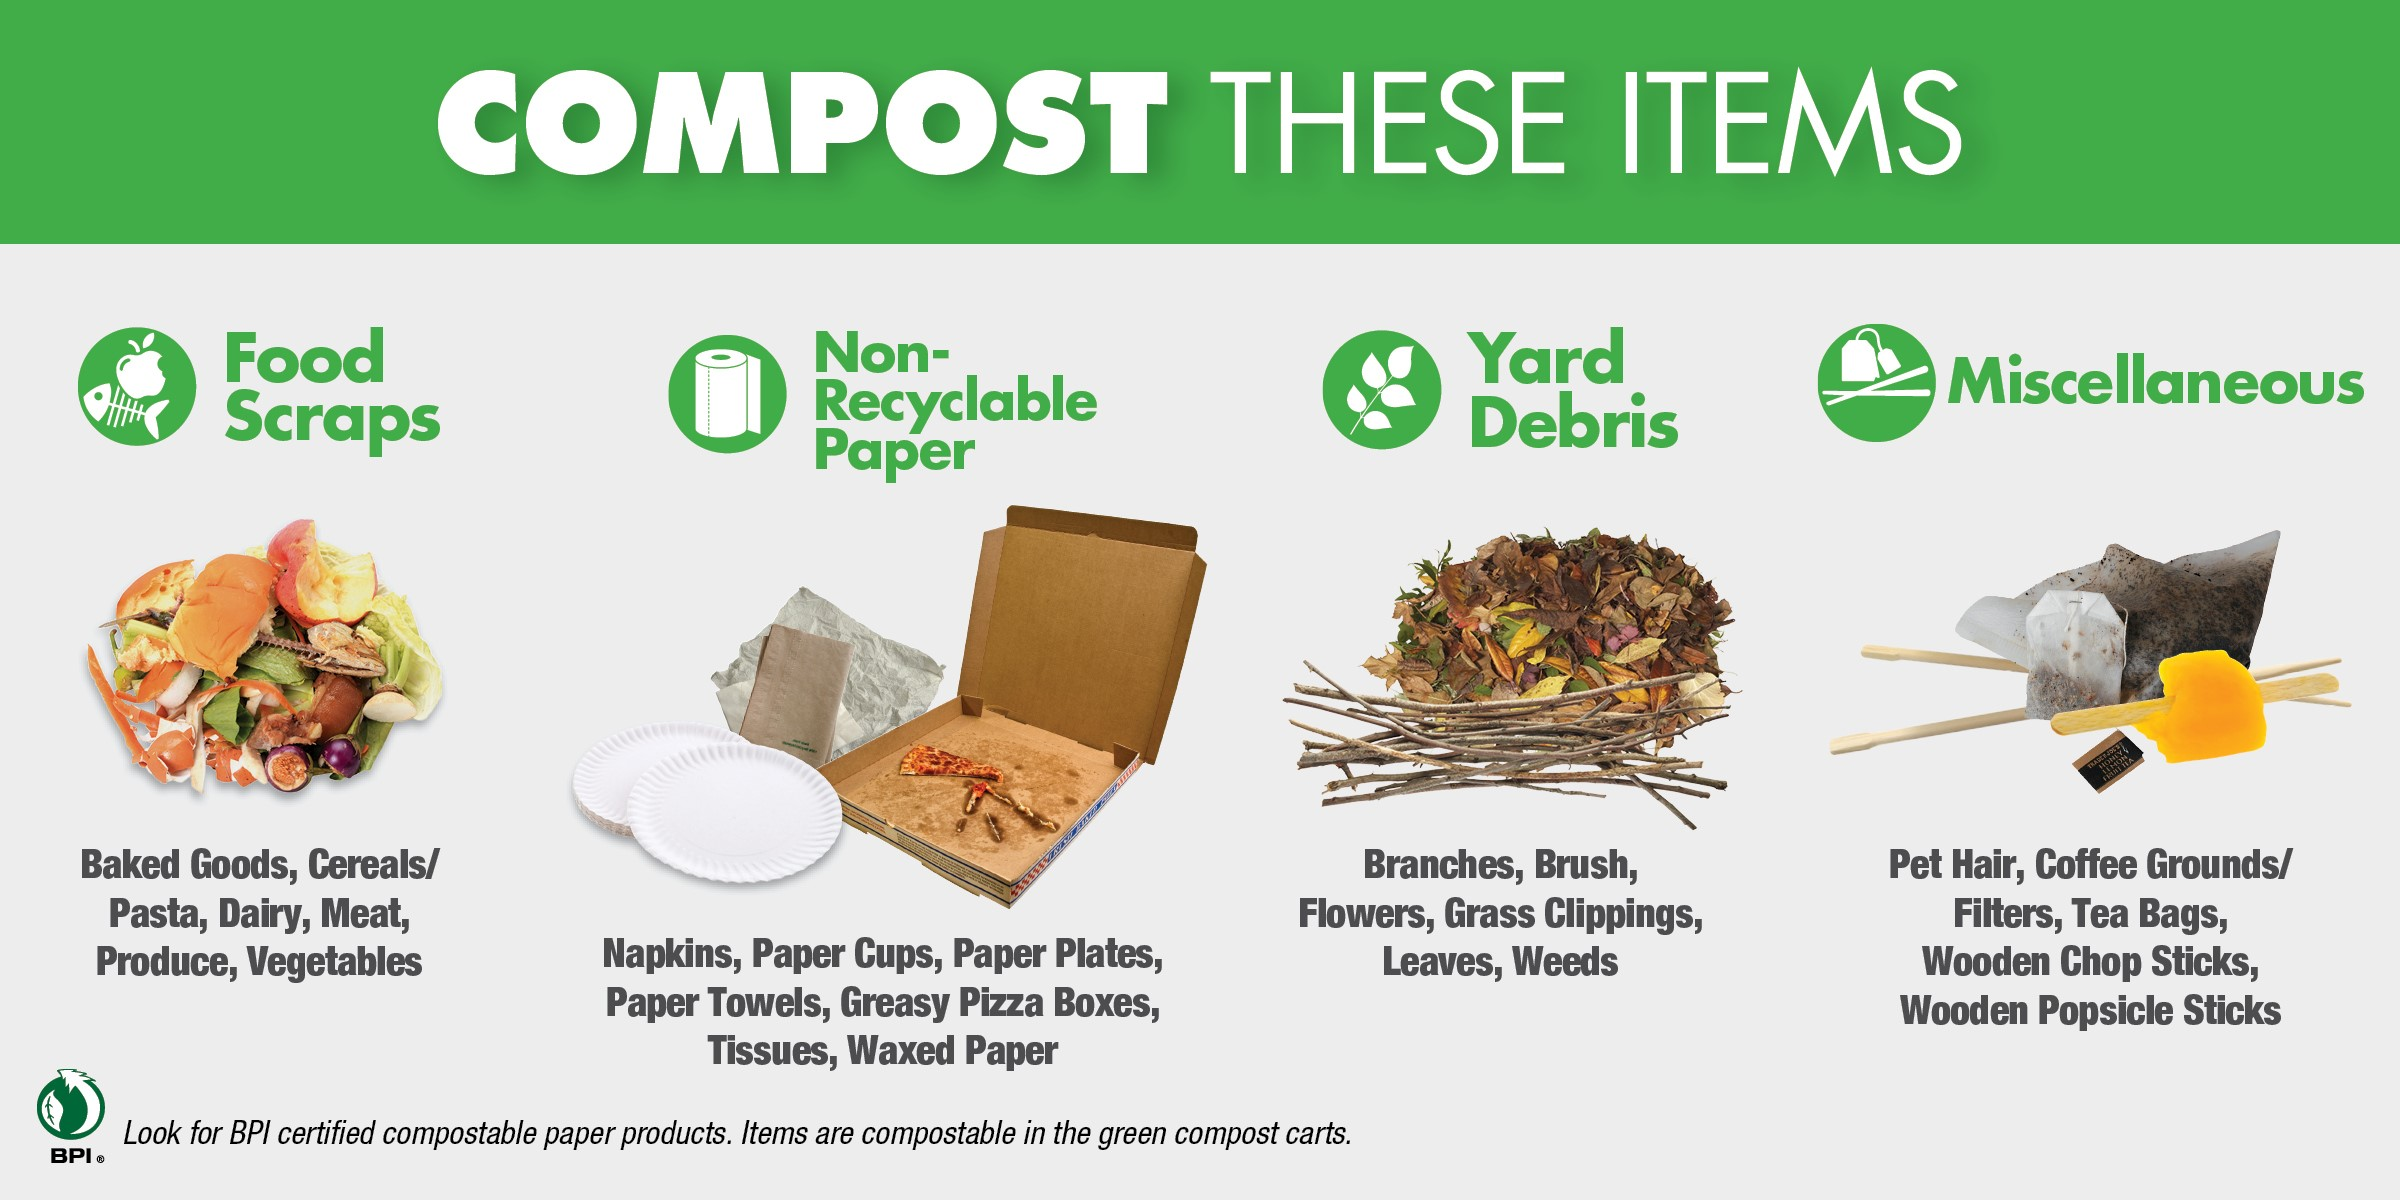 Compost These Items_2400x1200.jpg